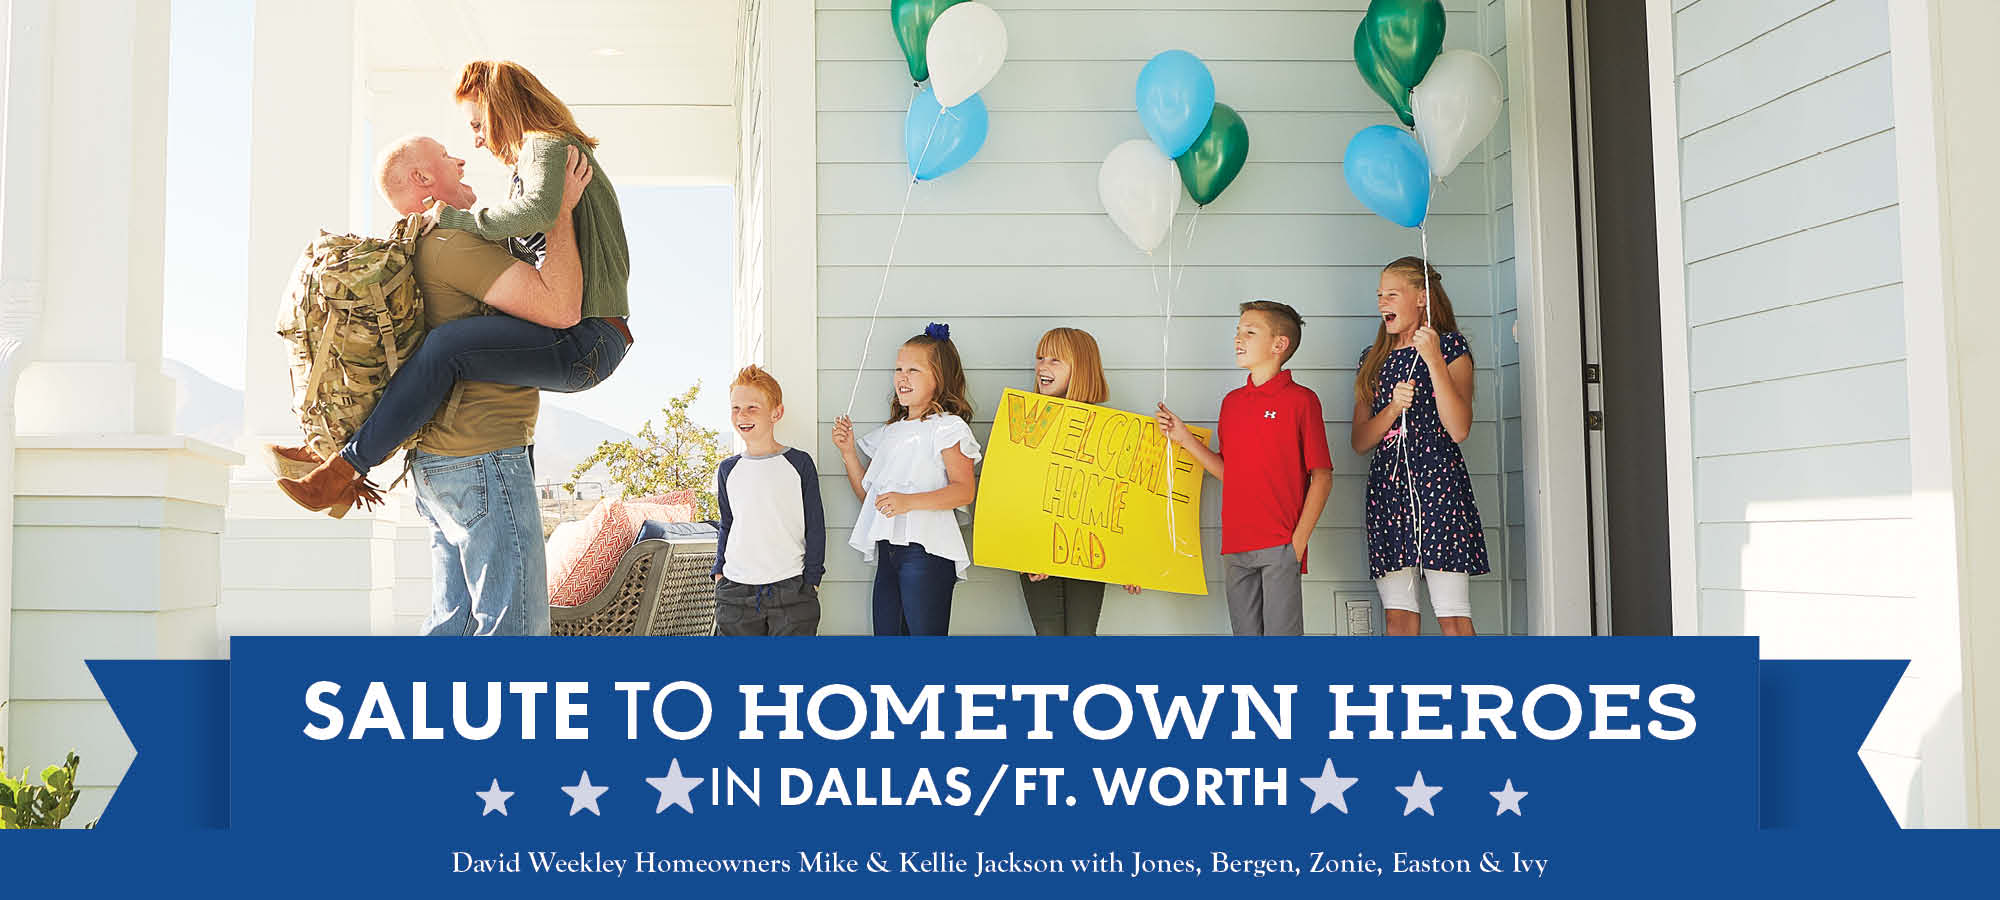 Salute to Hometown Heroes in Dallas/Ft. Worth